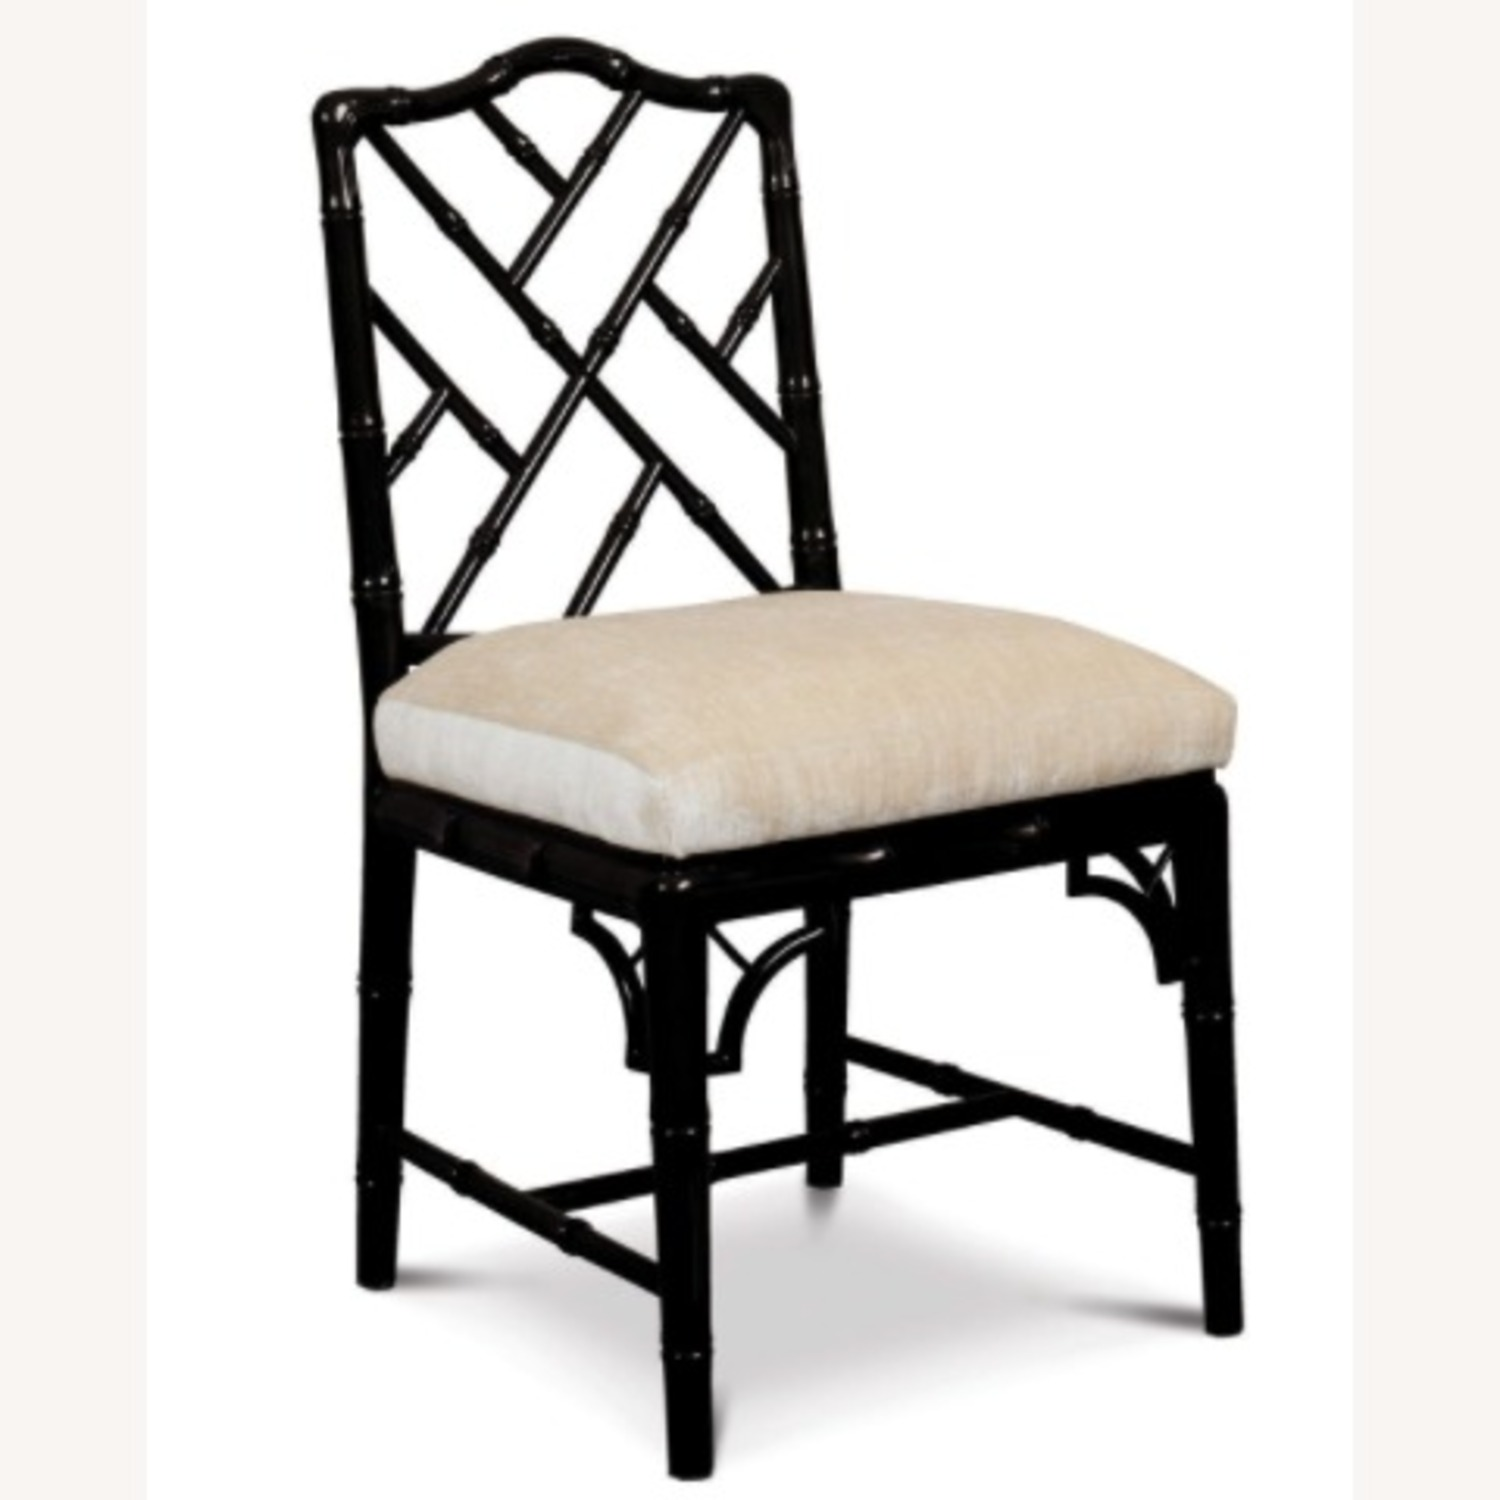 Jonathan Adler Black Lacquer Chippendale Chair - image-1